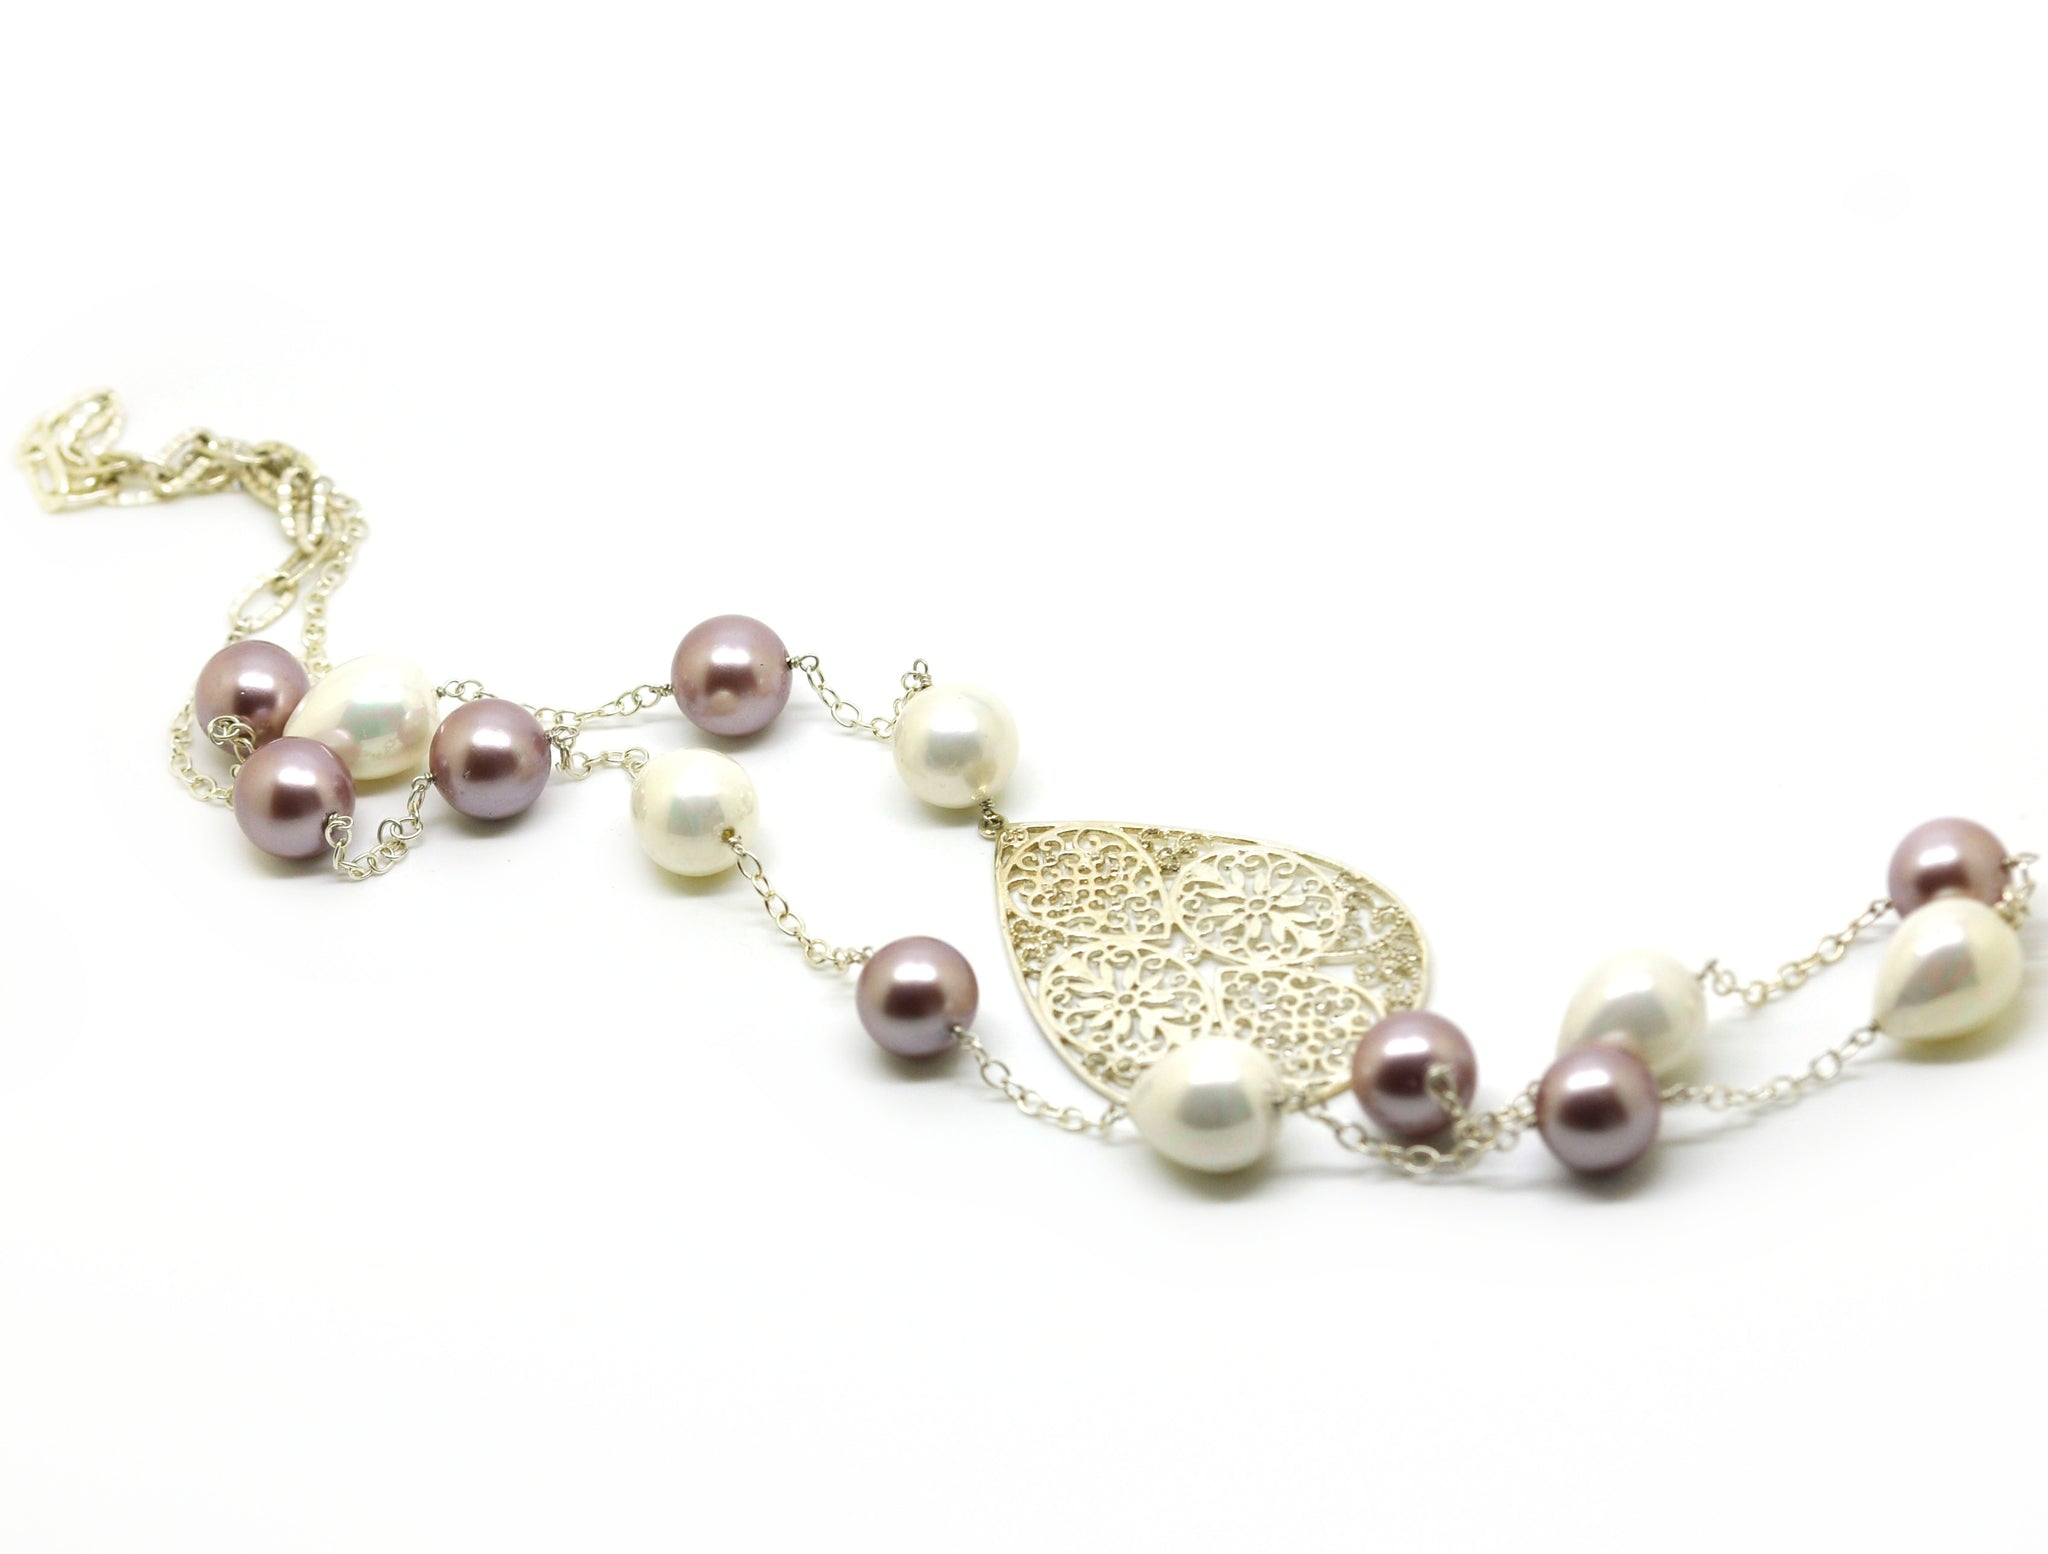 SOLD - NEW - Mother of Pearl necklace 2